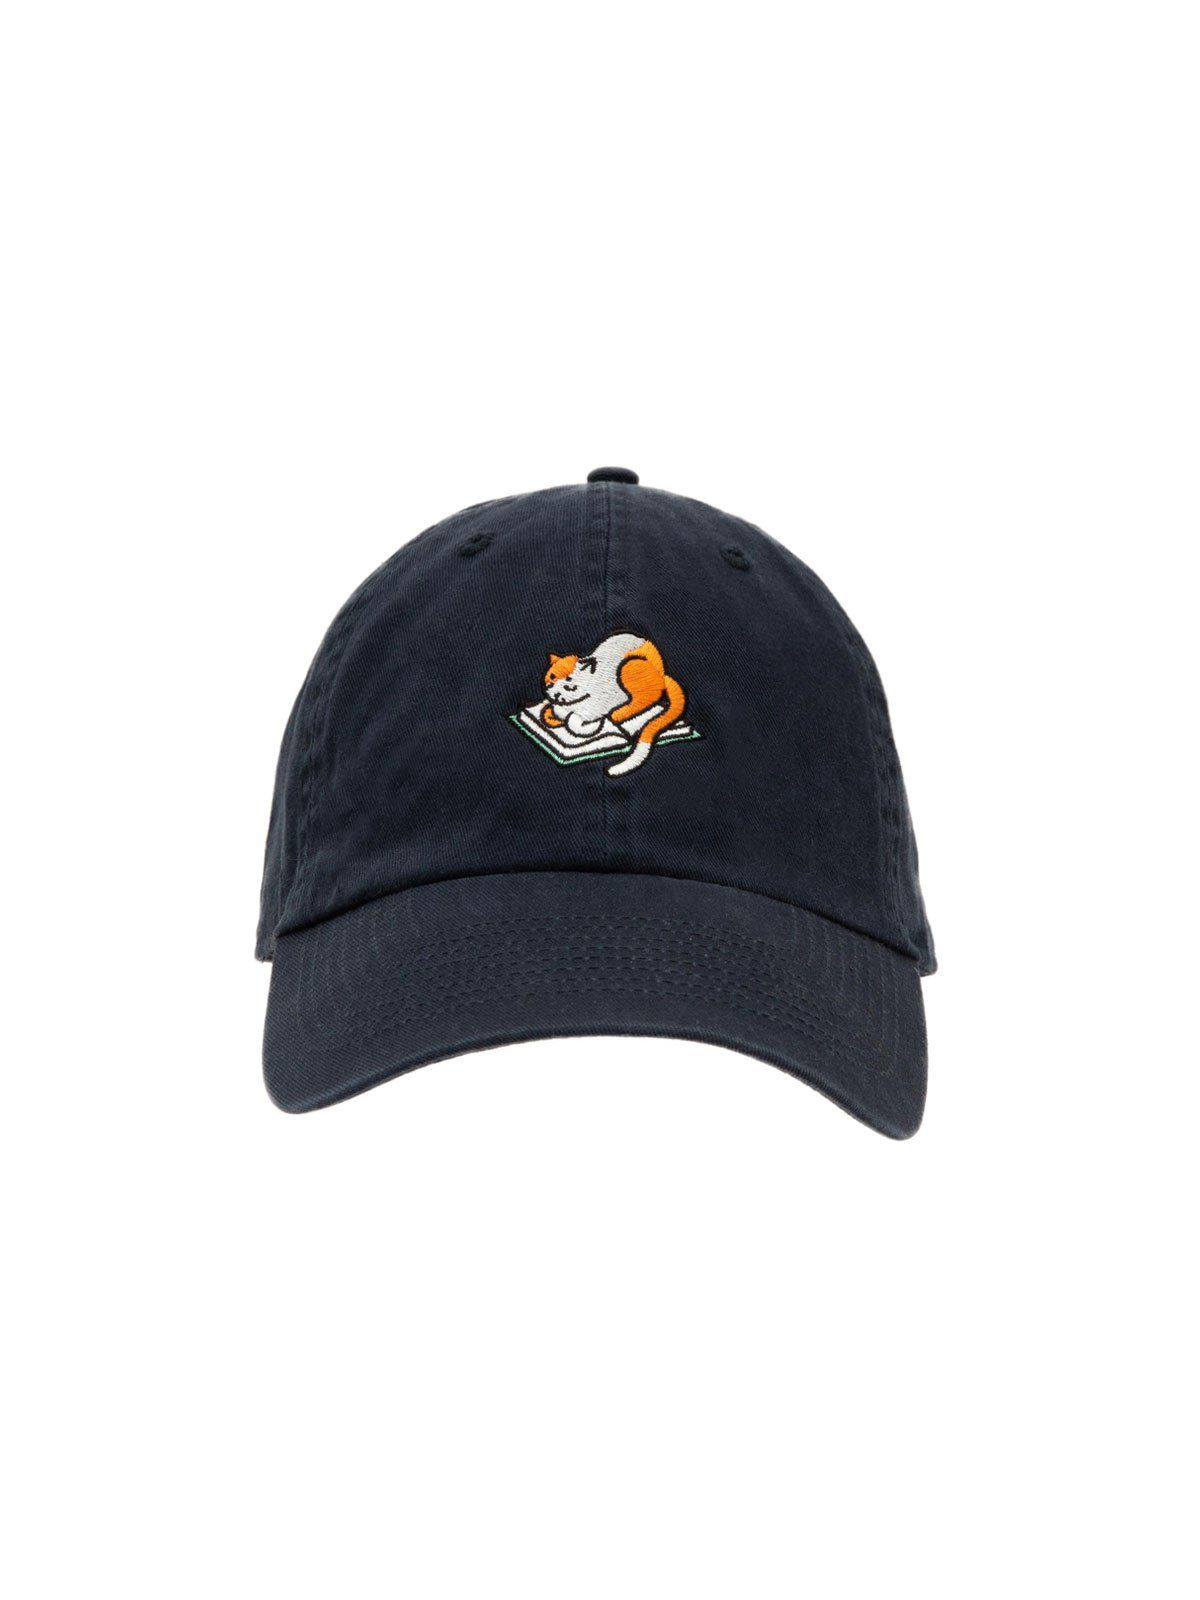 Baseball cap embroidered with a cat sitting on a book